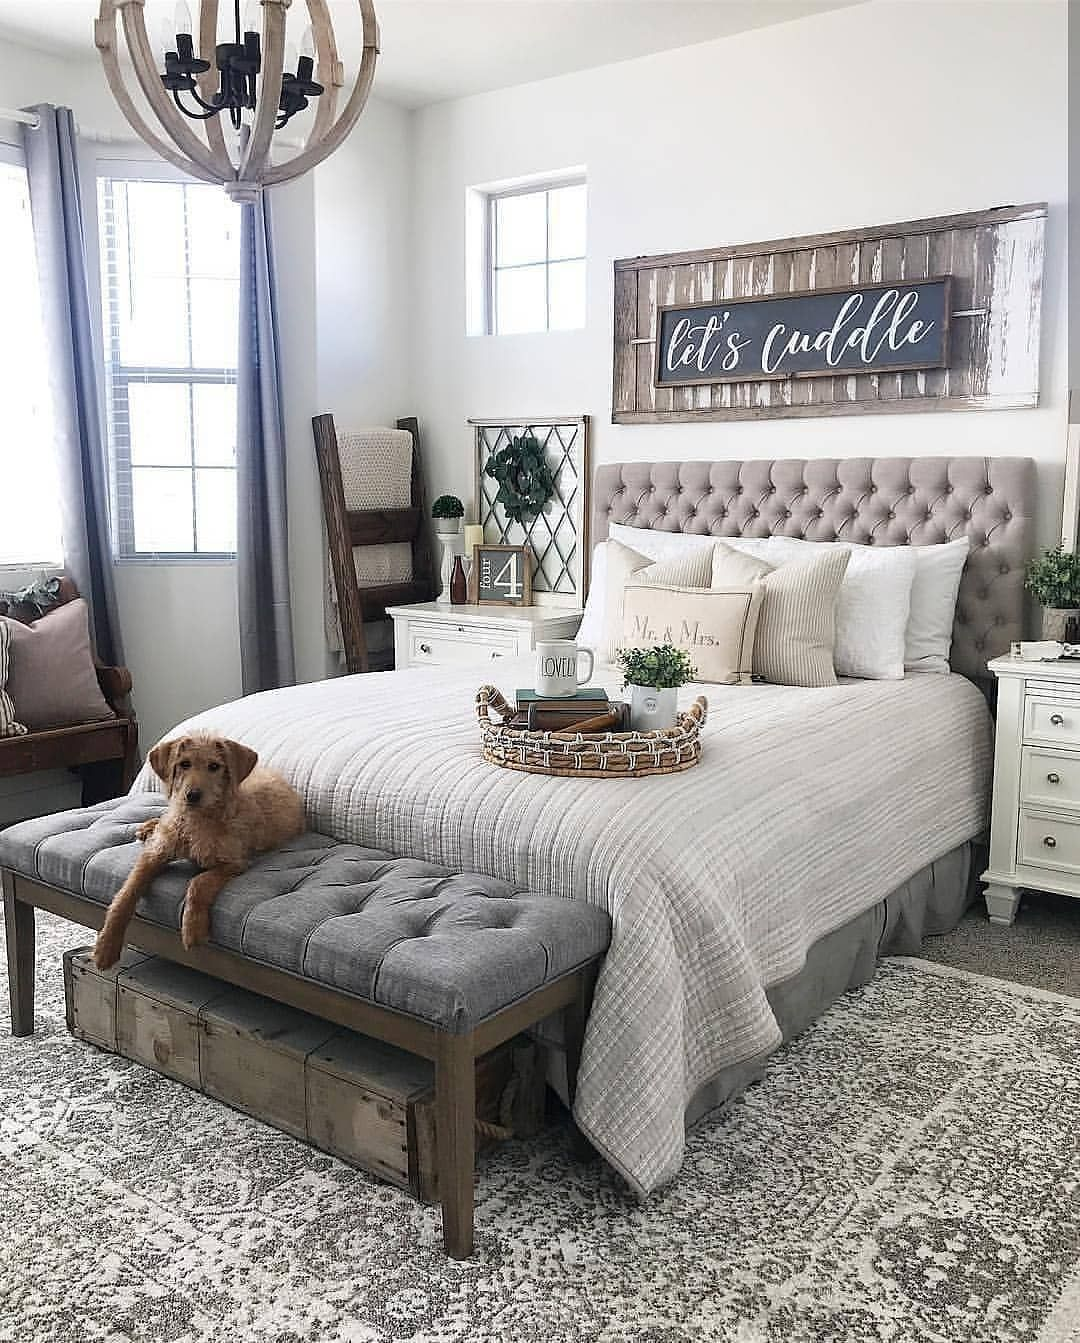 "Farmhouse Charm 🏡 On Instagram: ""We Want A Bedroom Like"